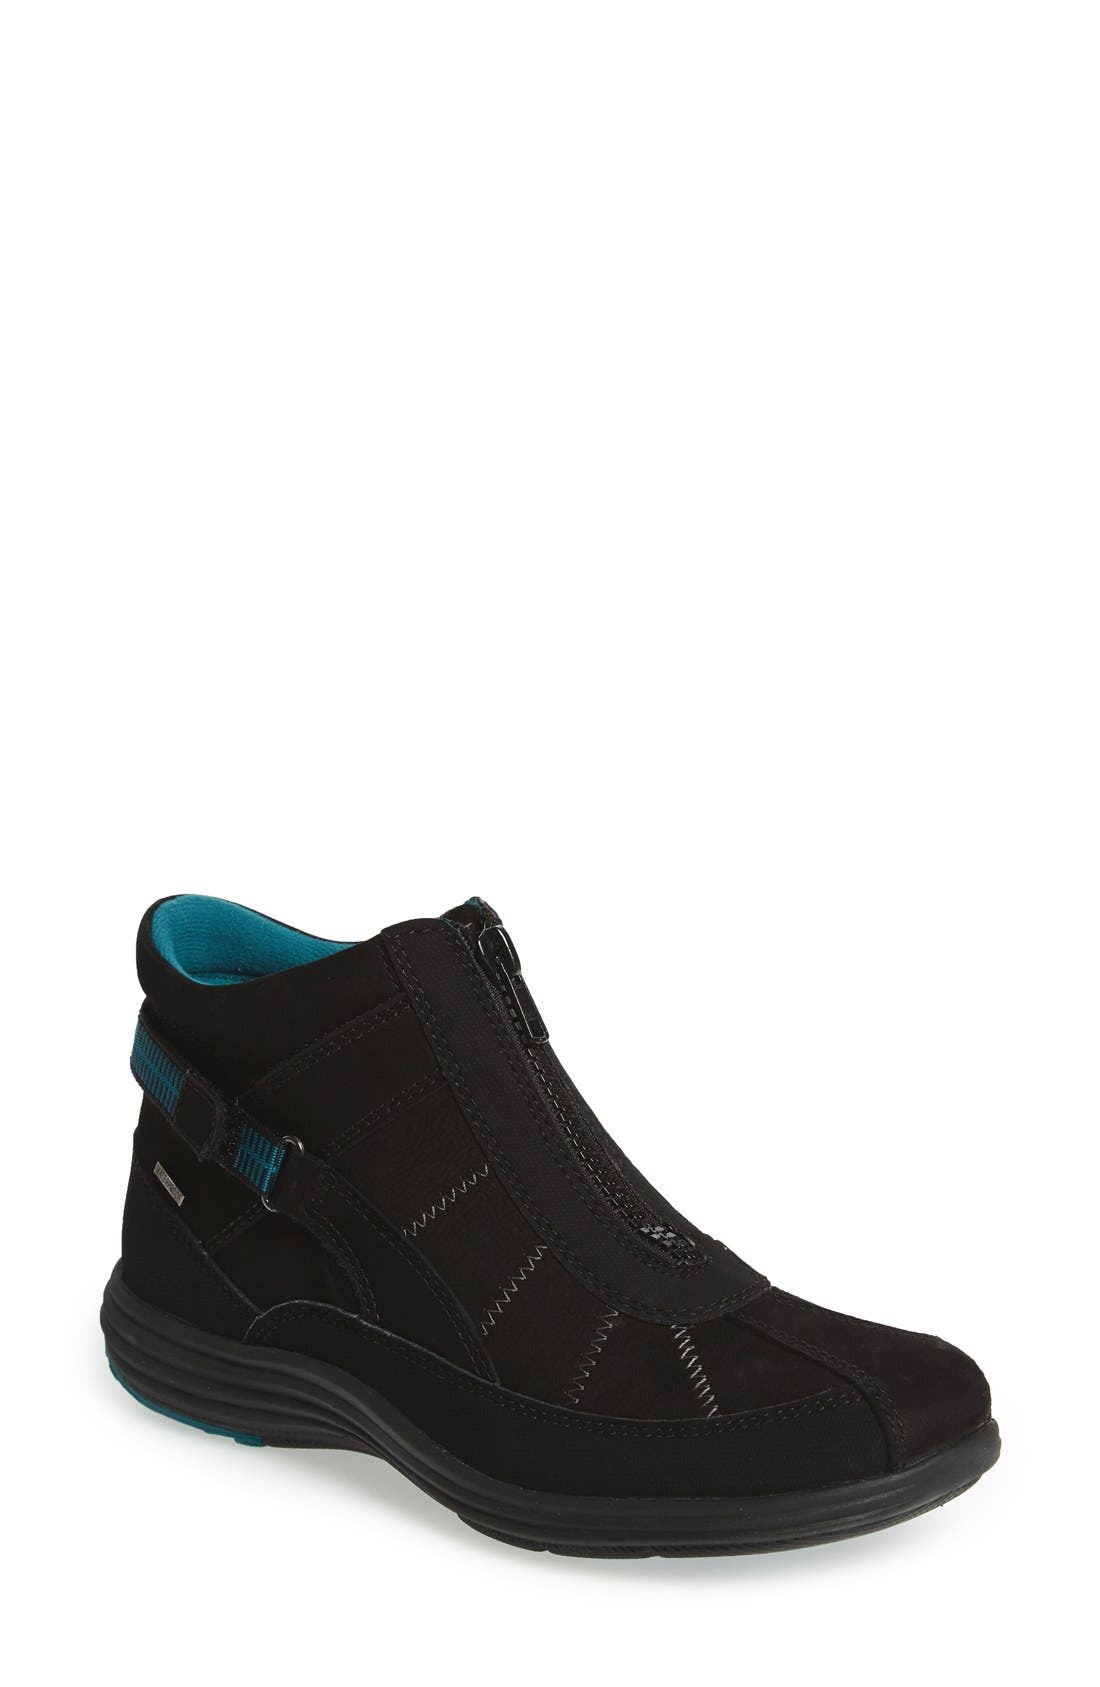 'Beverly' Waterproof Midi Sneaker,                         Main,                         color, Black Leather